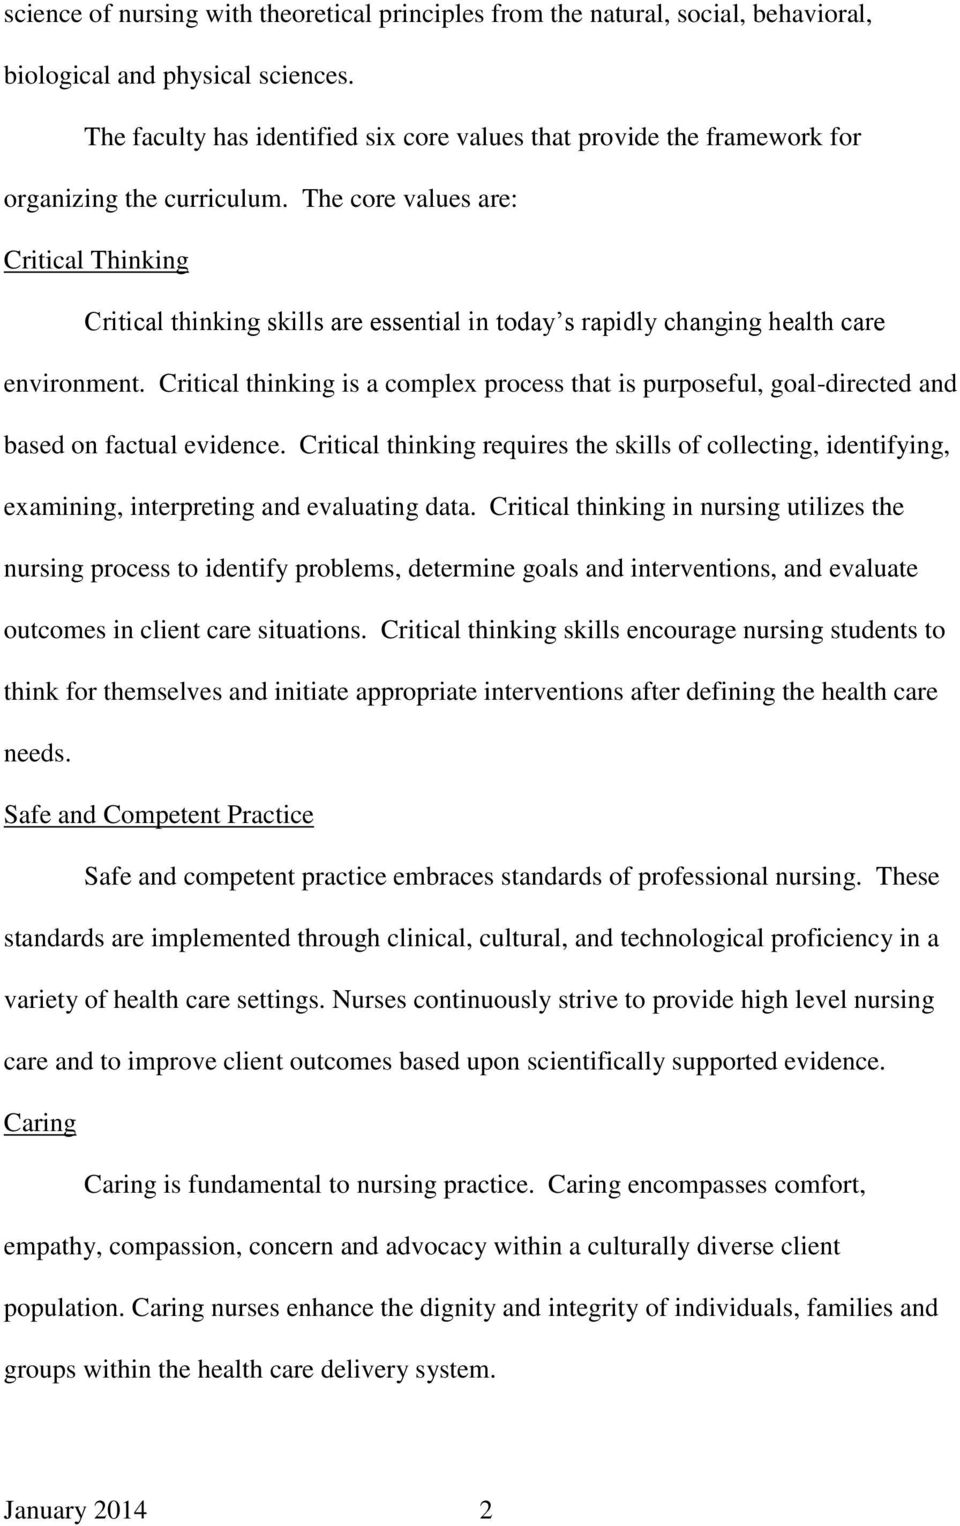 The core values are: Critical Thinking Critical thinking skills are essential in today s rapidly changing health care environment.